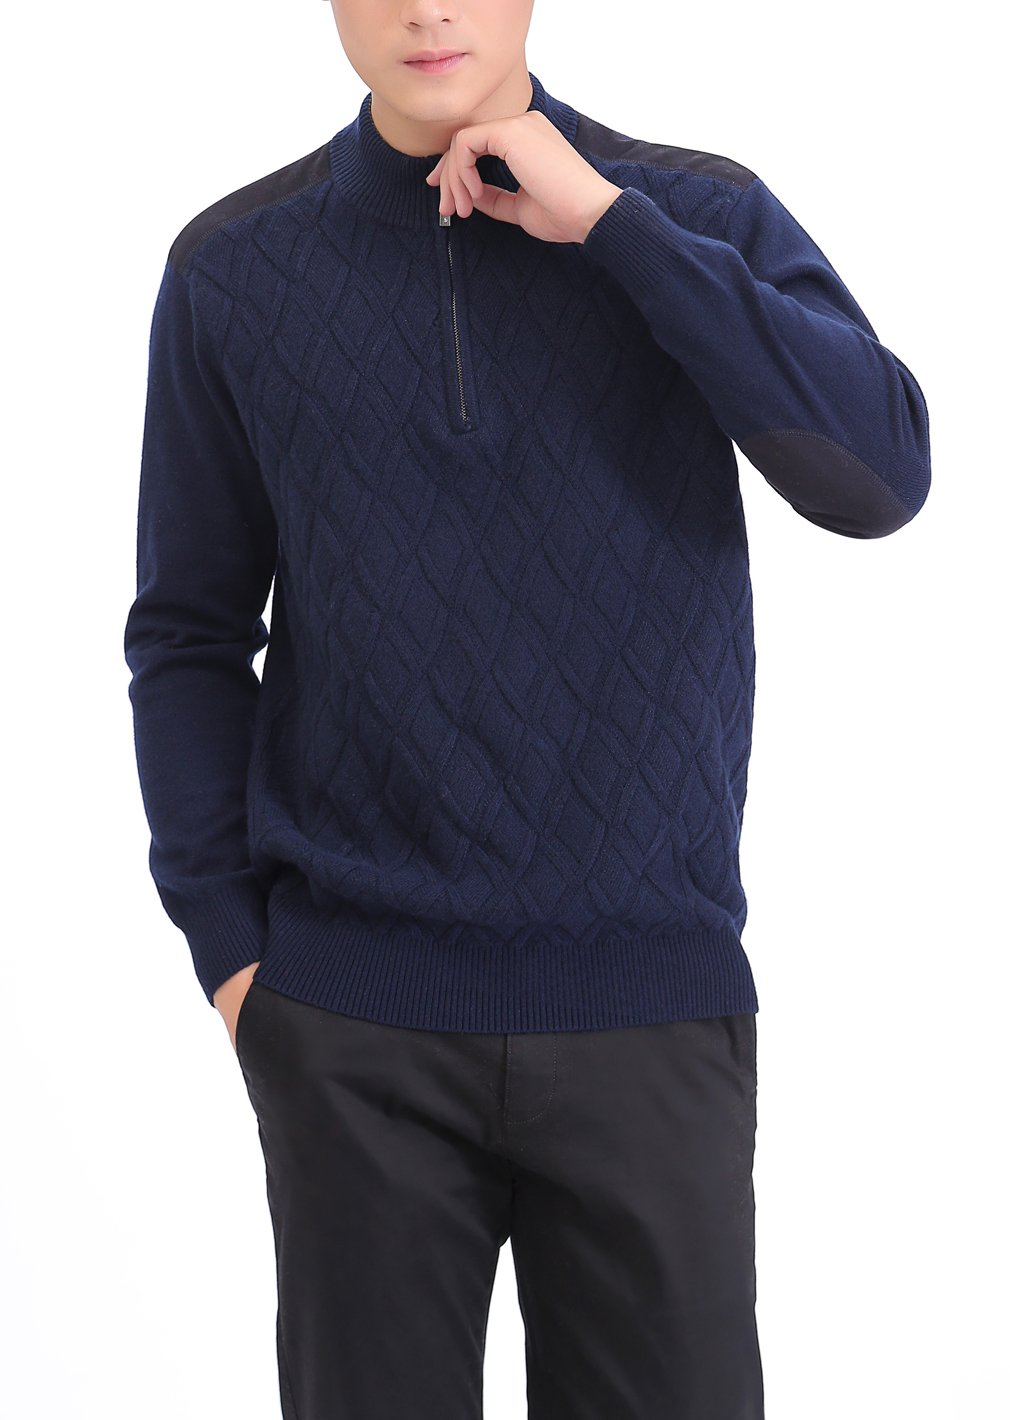 METERDE Men's Knitwear Half Zip Business Casual Cashmere Pullover Sweater X by Cashmere DX (Image #2)